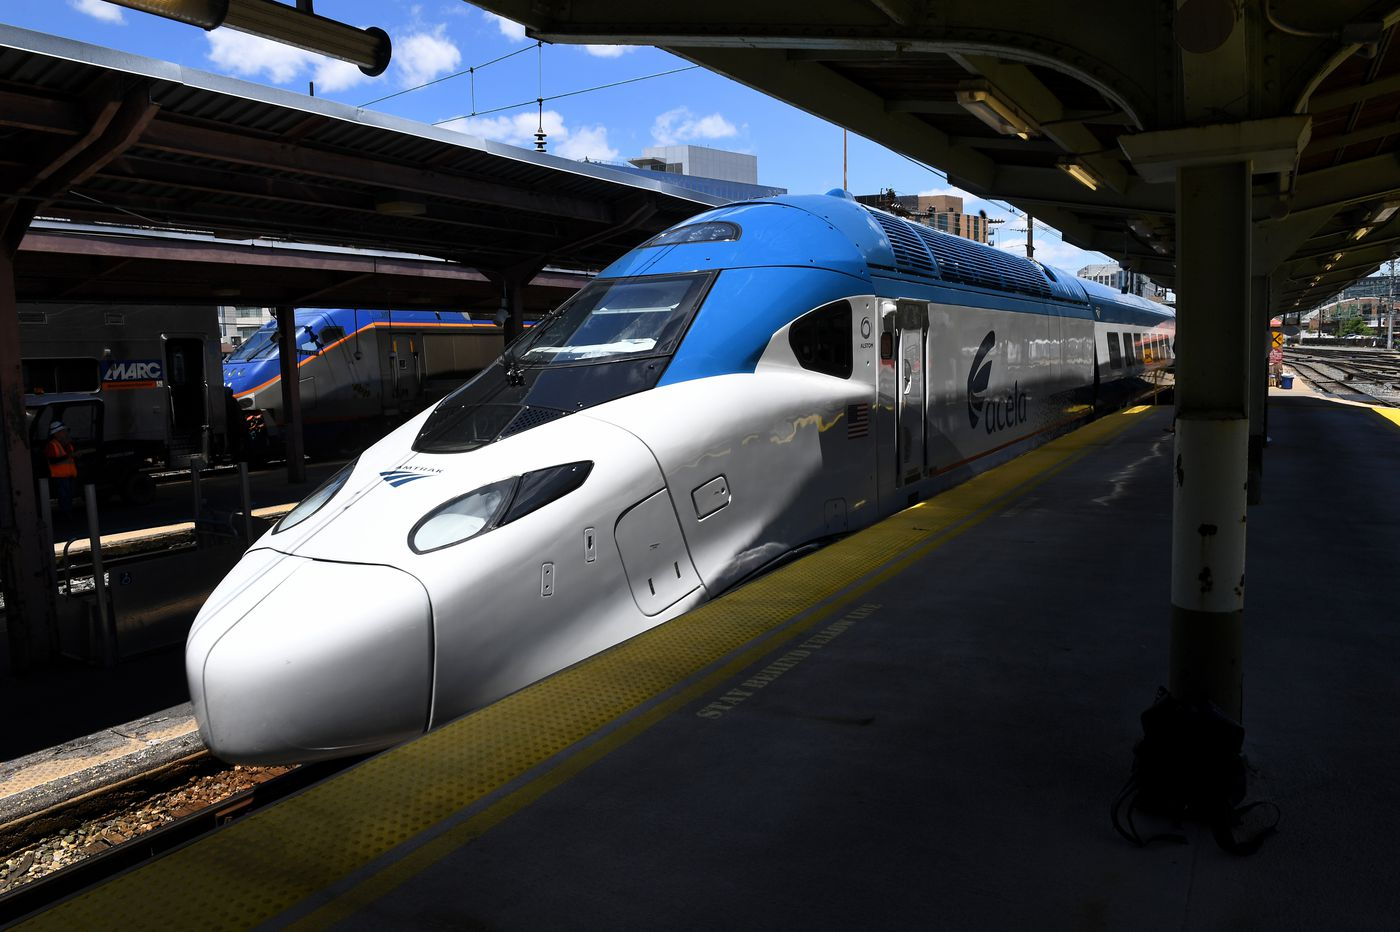 In crisis, Amtrak works to get new high-speed trains operating in 2021